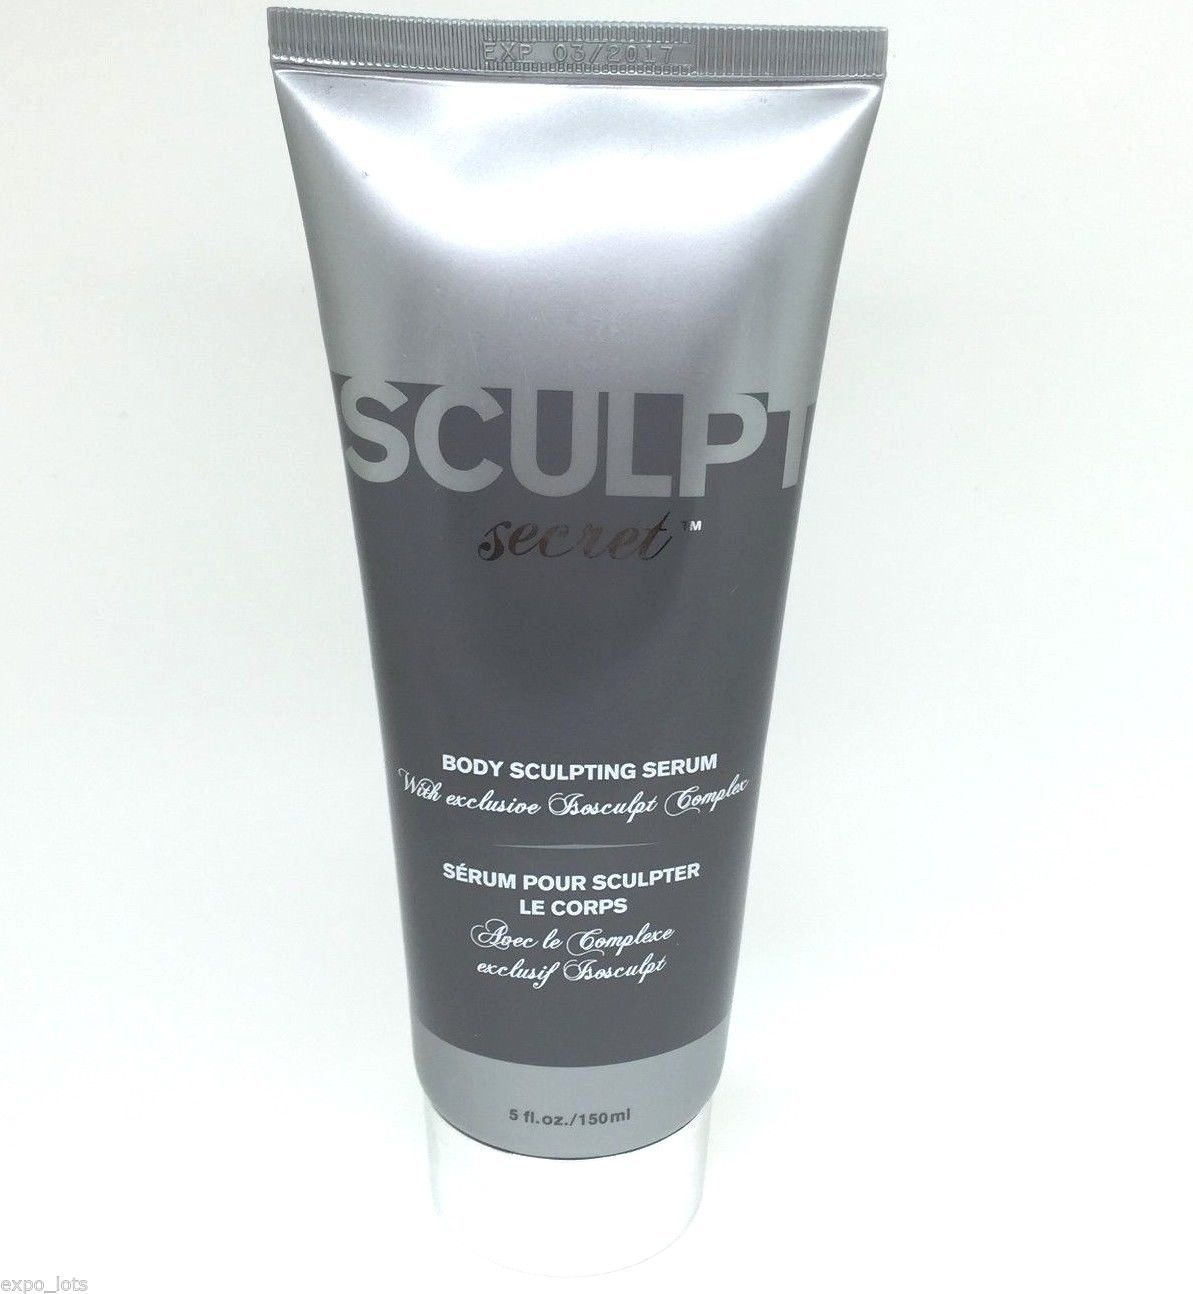 SCULPT-SECRET-BODY-SCULPTING-SERUM